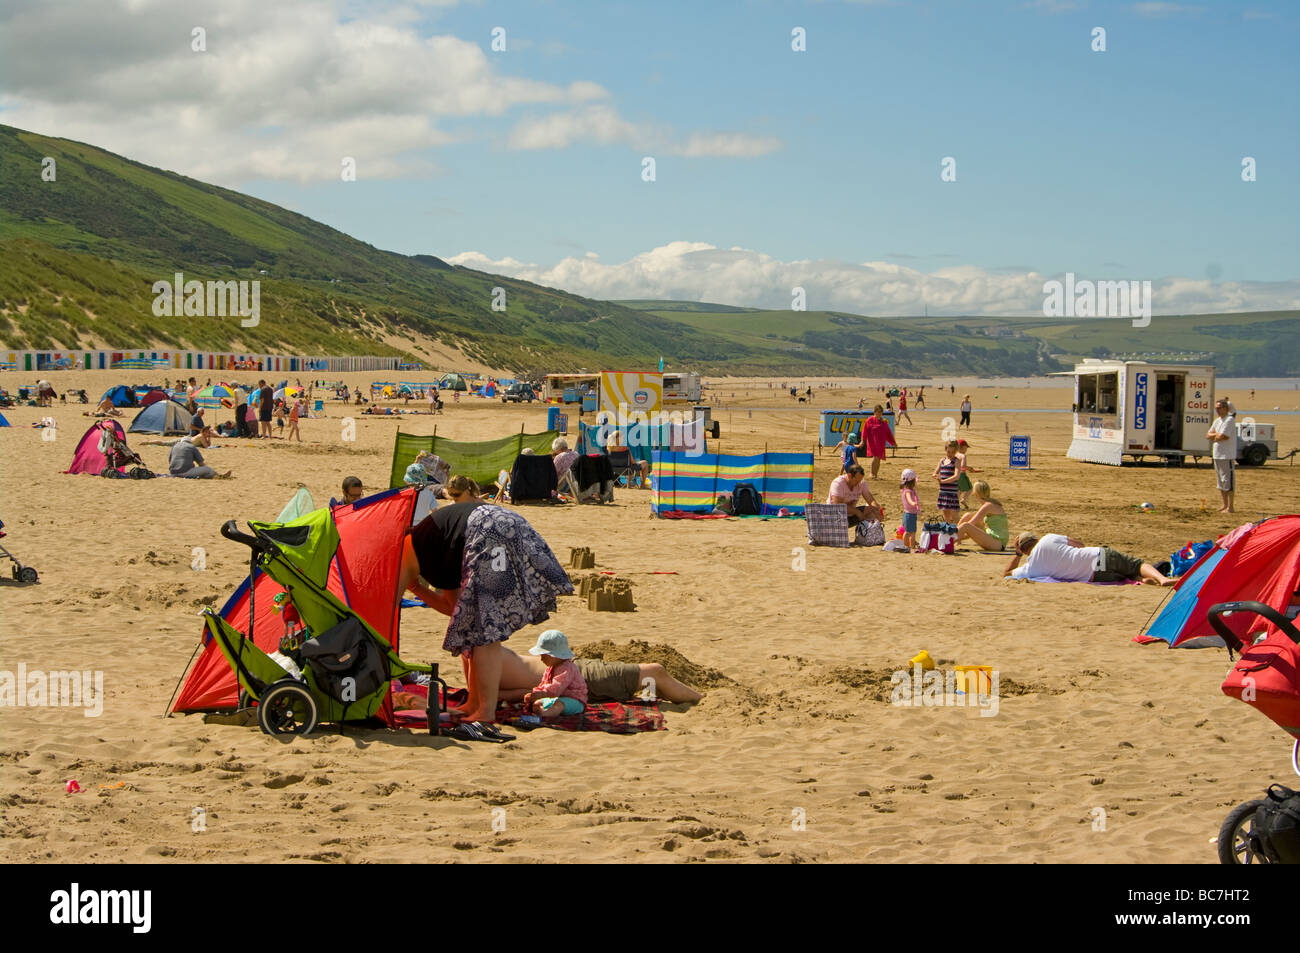 Holidaymakers On The Seaside Beach at Woolacombe Bay North Devon England uk Stock Photo